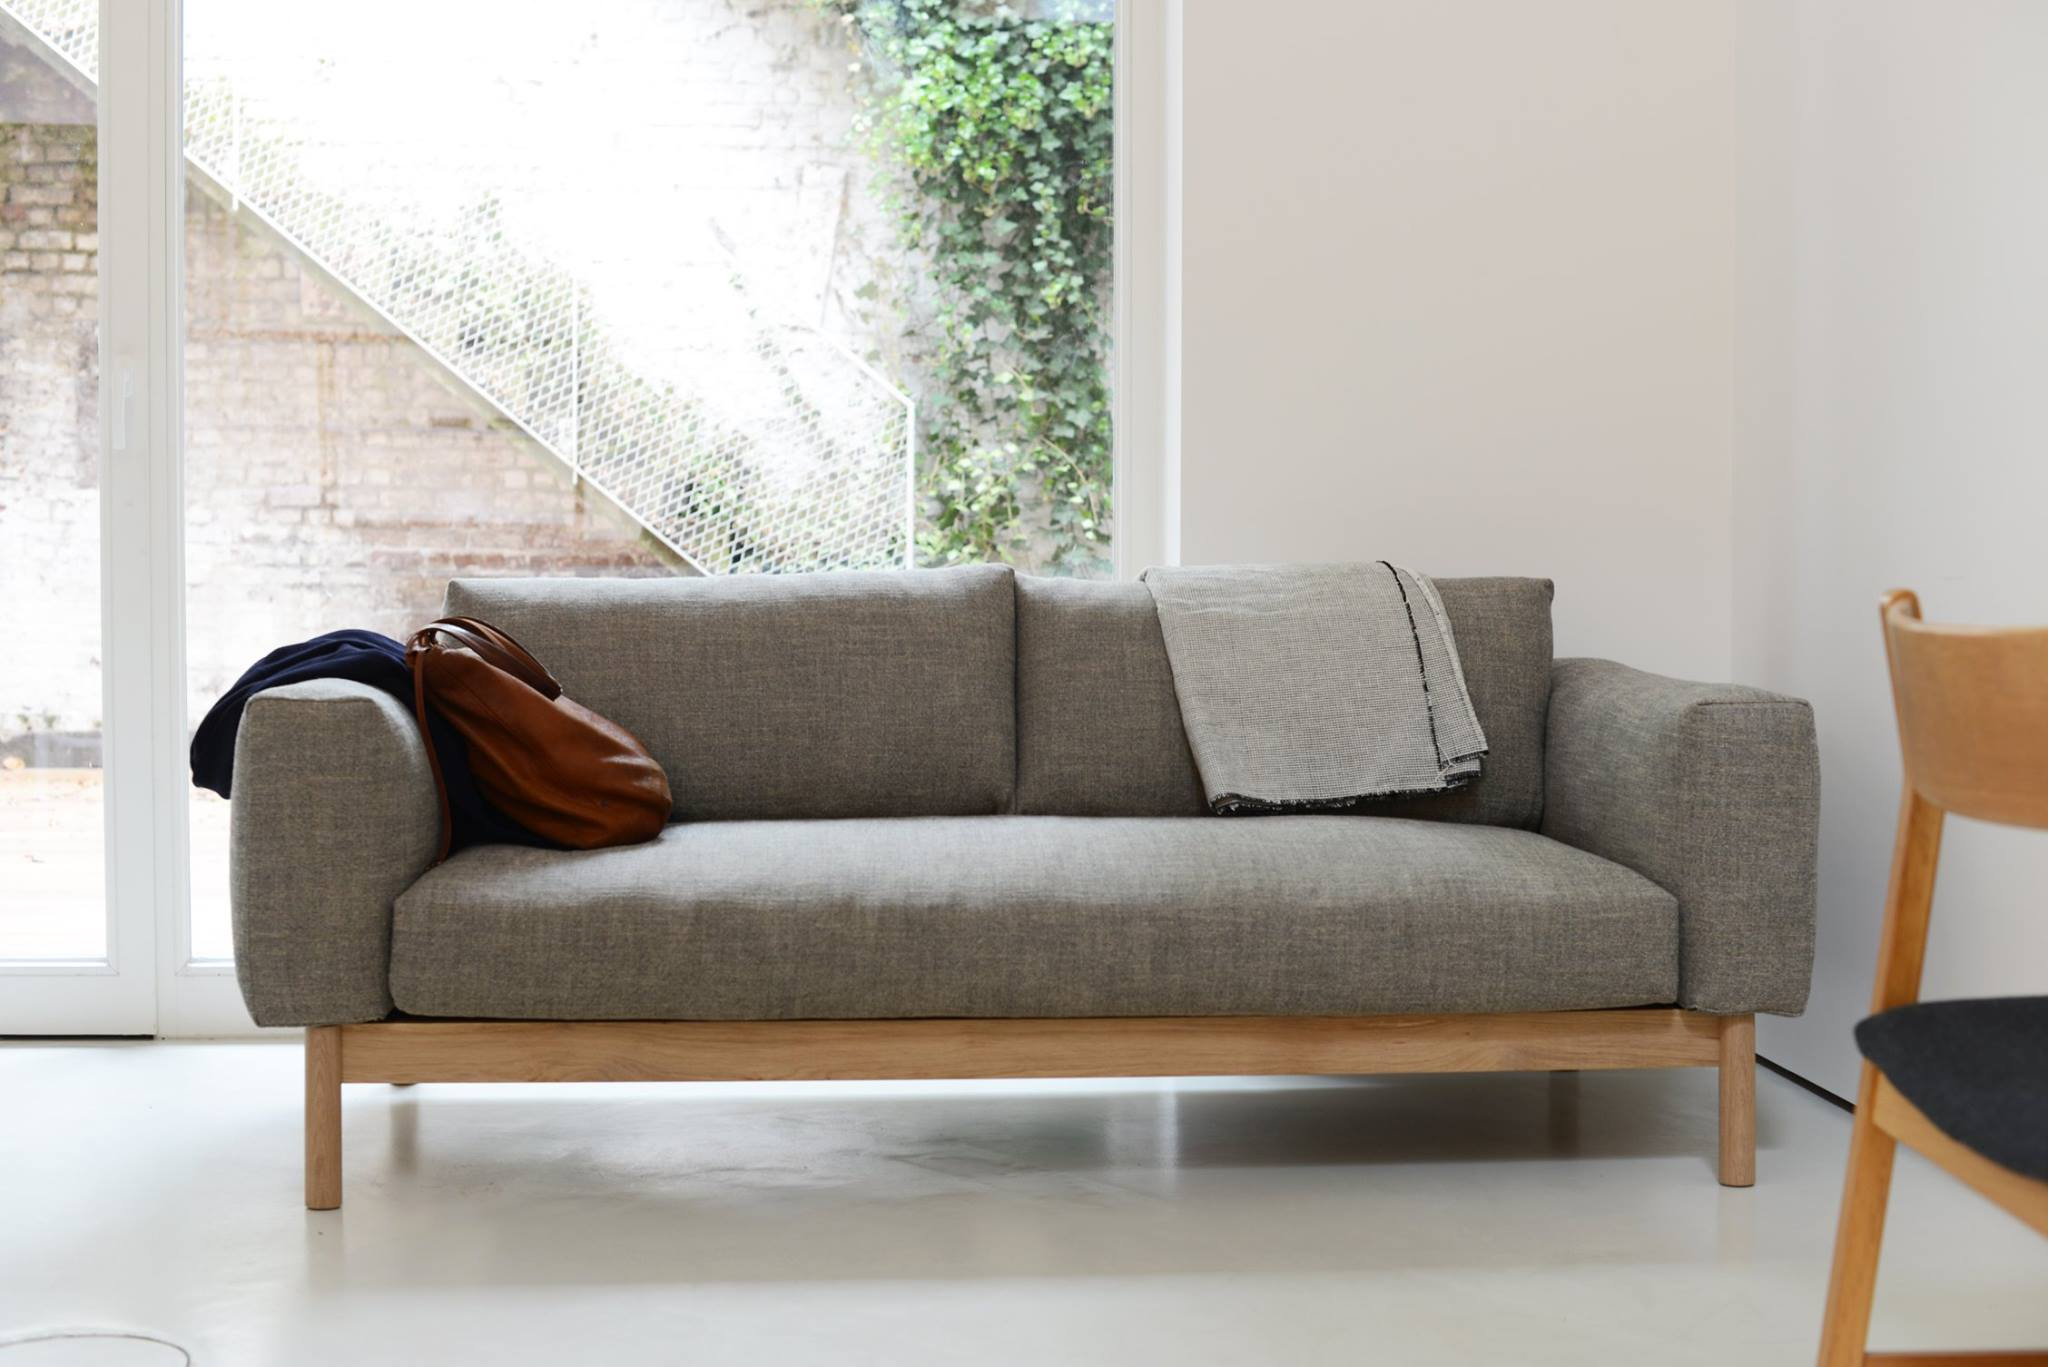 Designer Furniture Wellington Ma Sofa By Marina Bautier